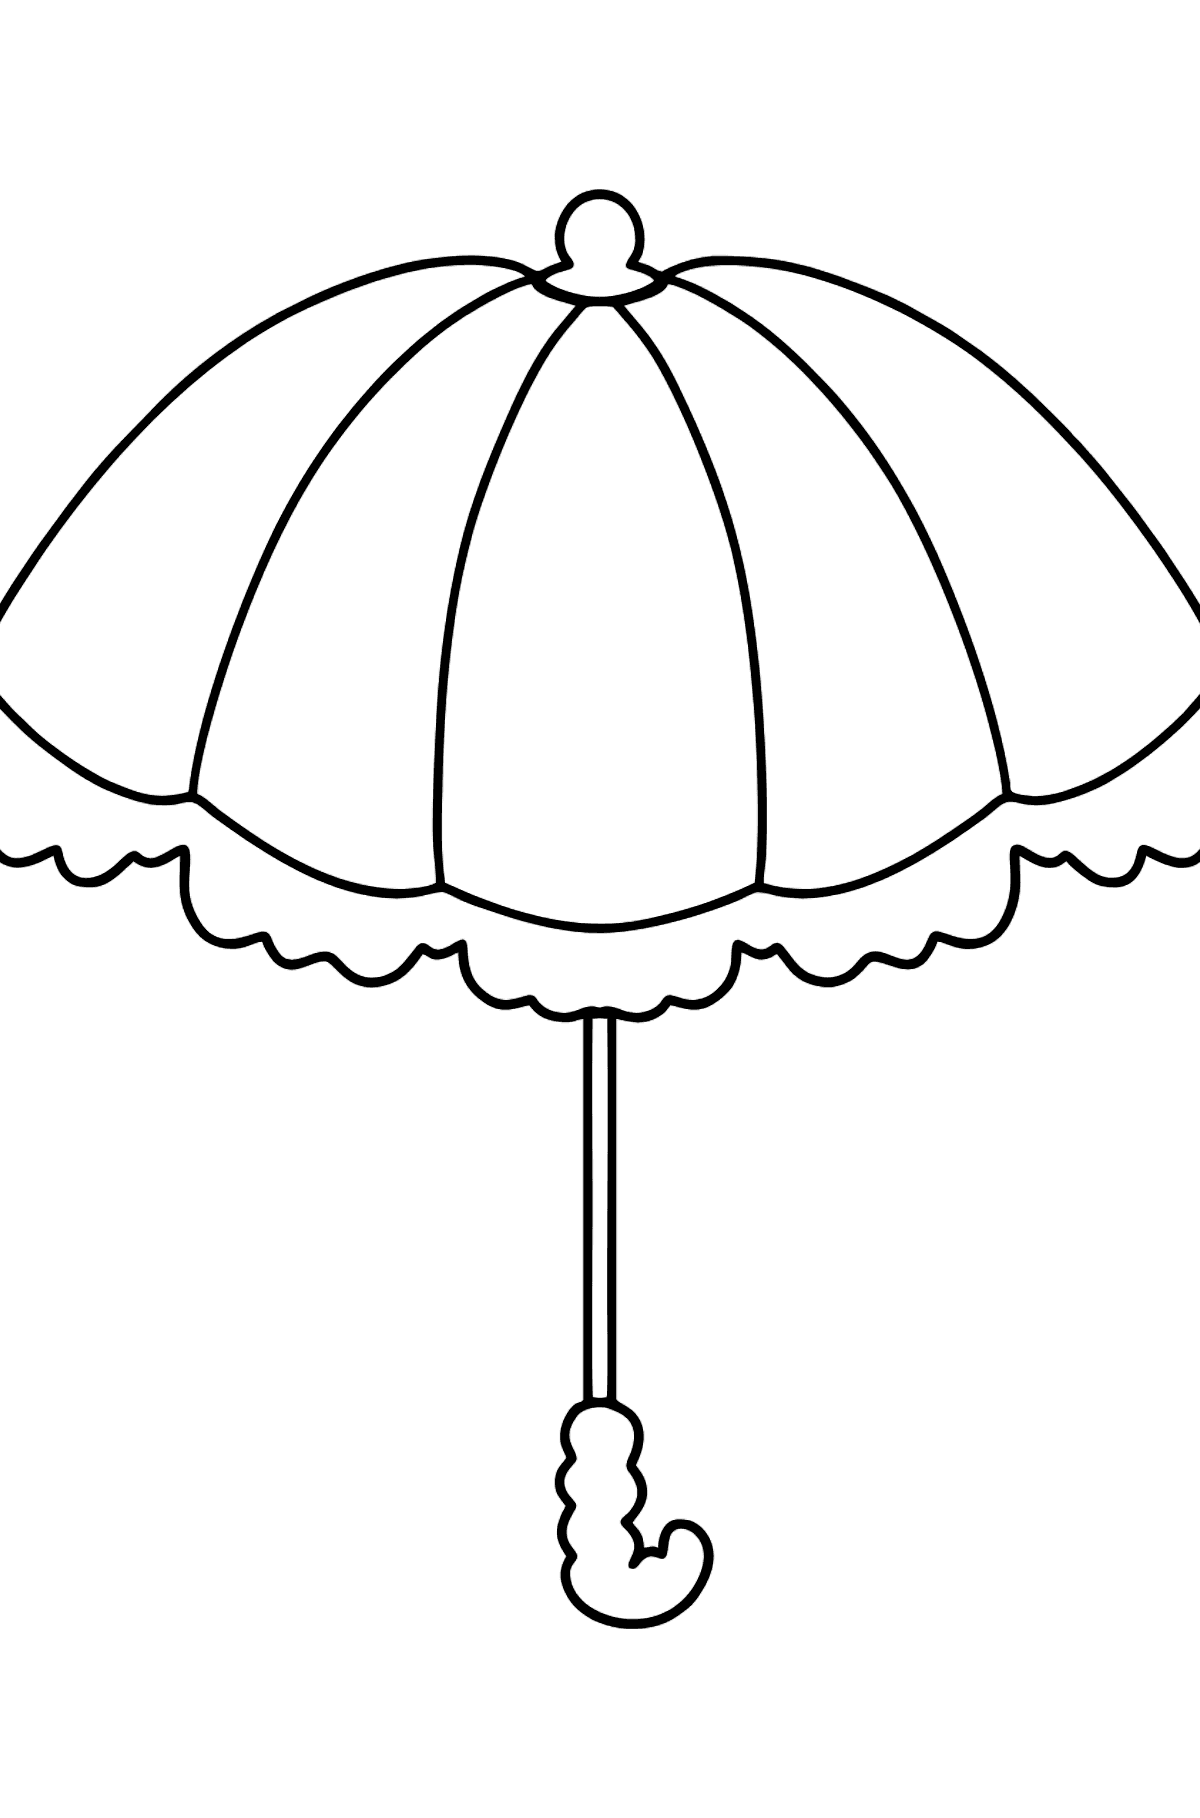 Simple coloring page - an umbrella - Coloring Pages for Kids